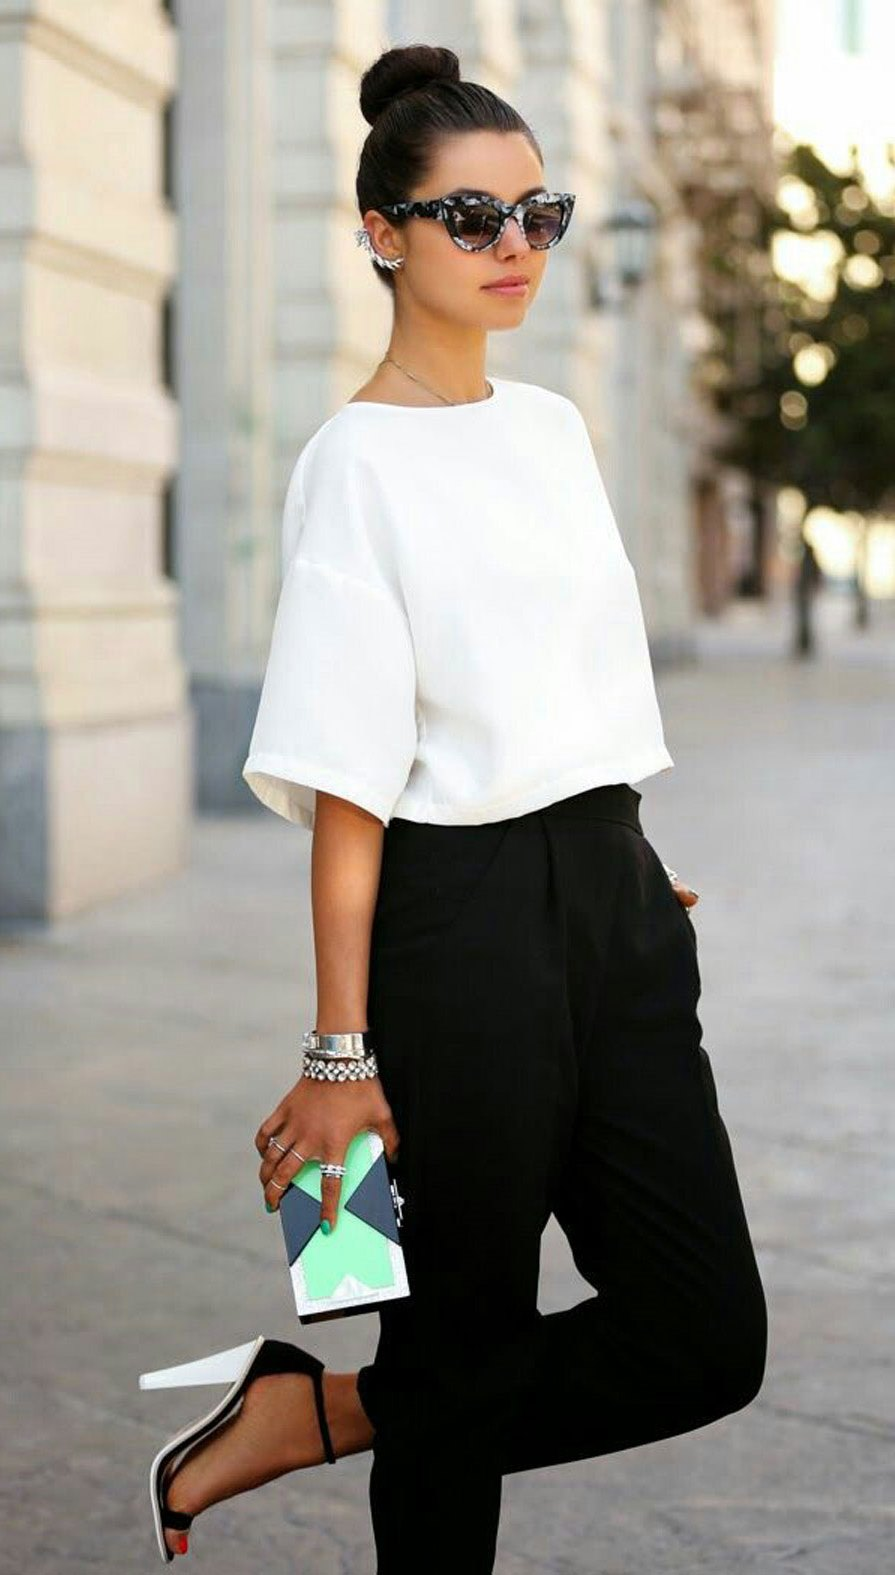 trendy outfit / white top + clutch + black pants + heels